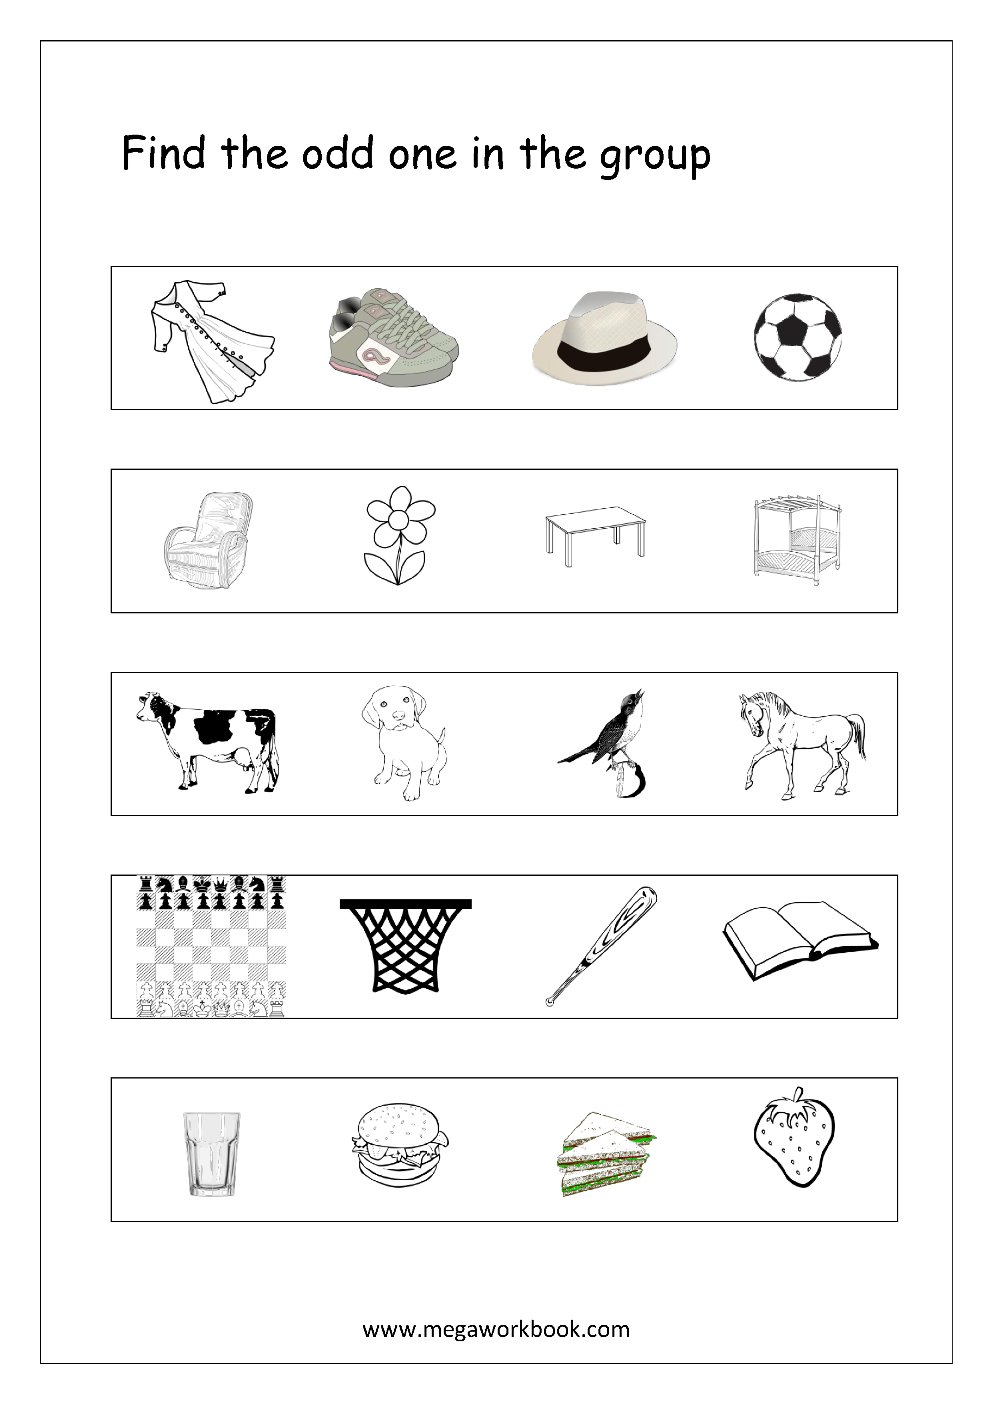 Worksheet : Kindergarten Logic Worksheets For Kids The Best Image - Printable Puzzle For Kindergarten